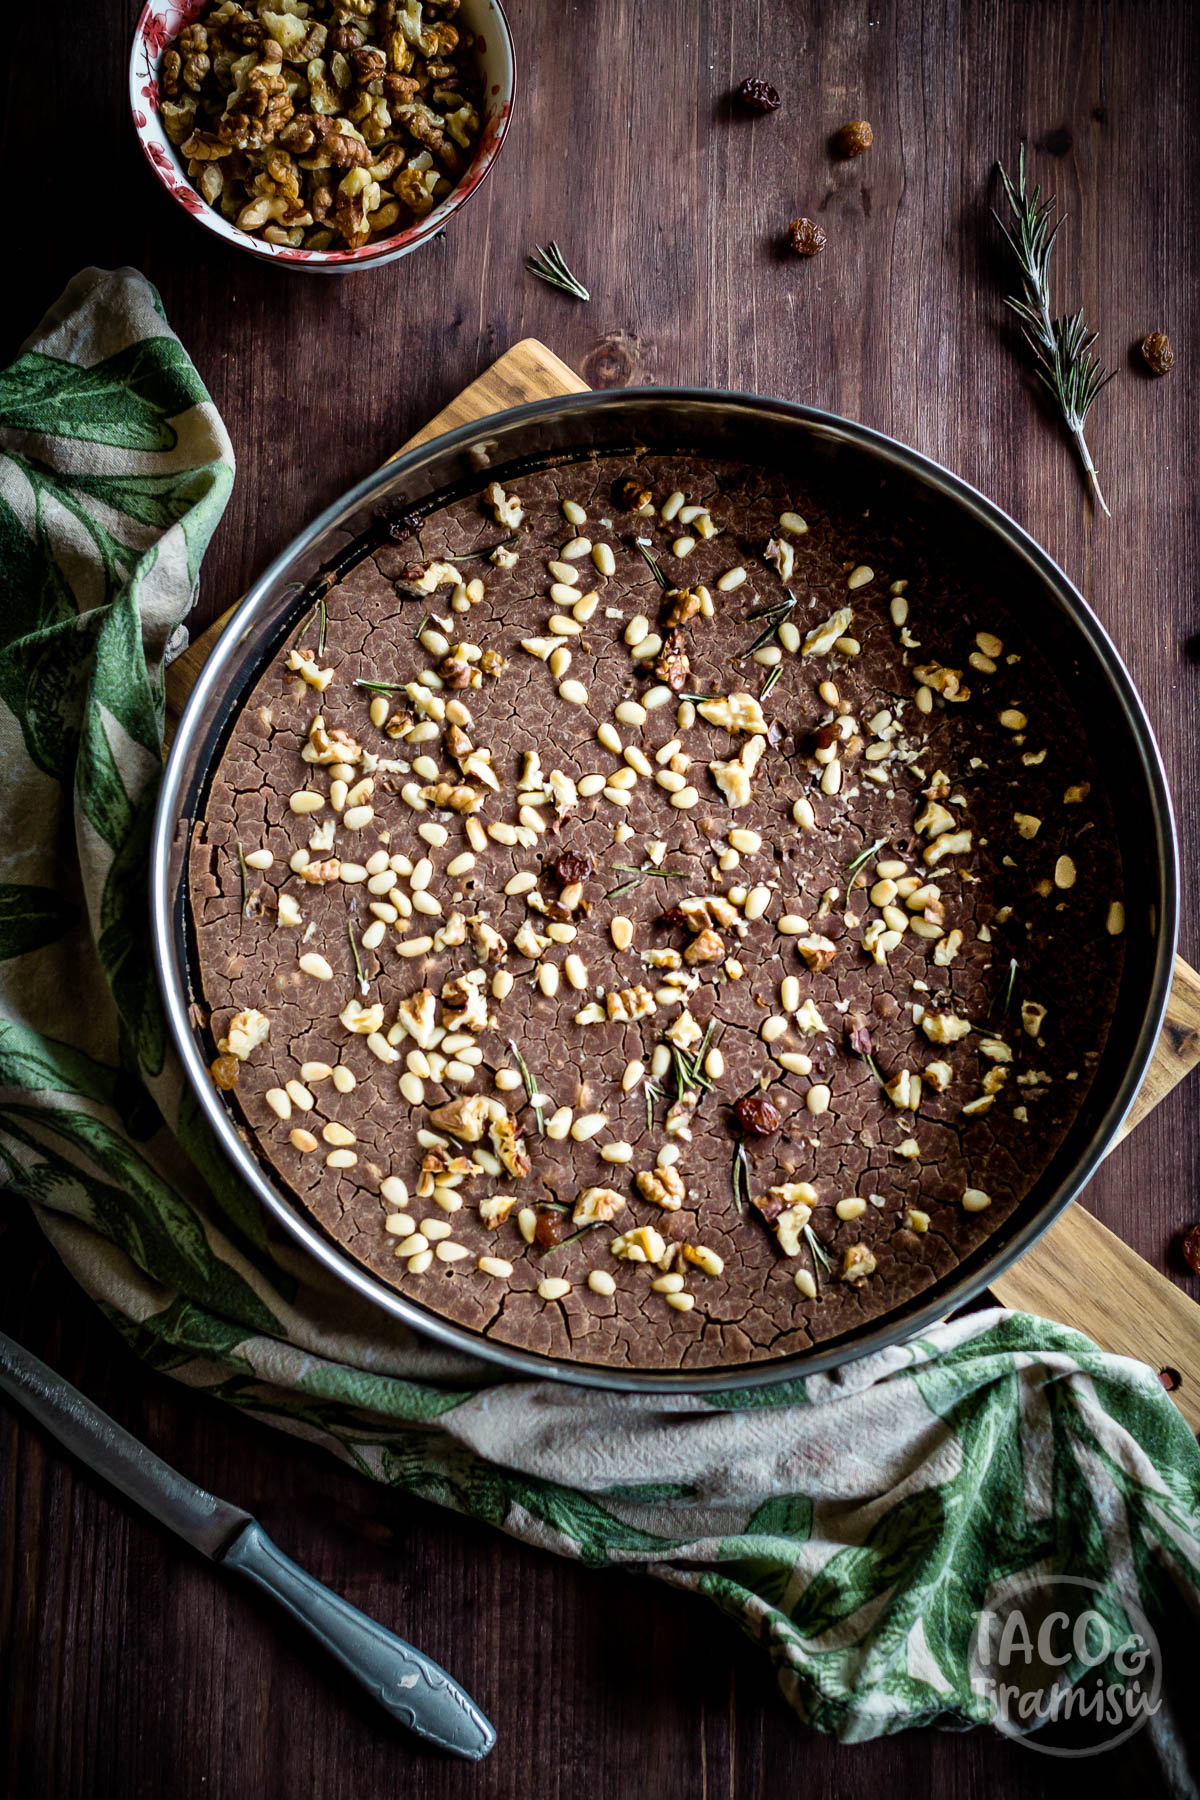 castagnaccio in a pan with nuts aside, flat lay